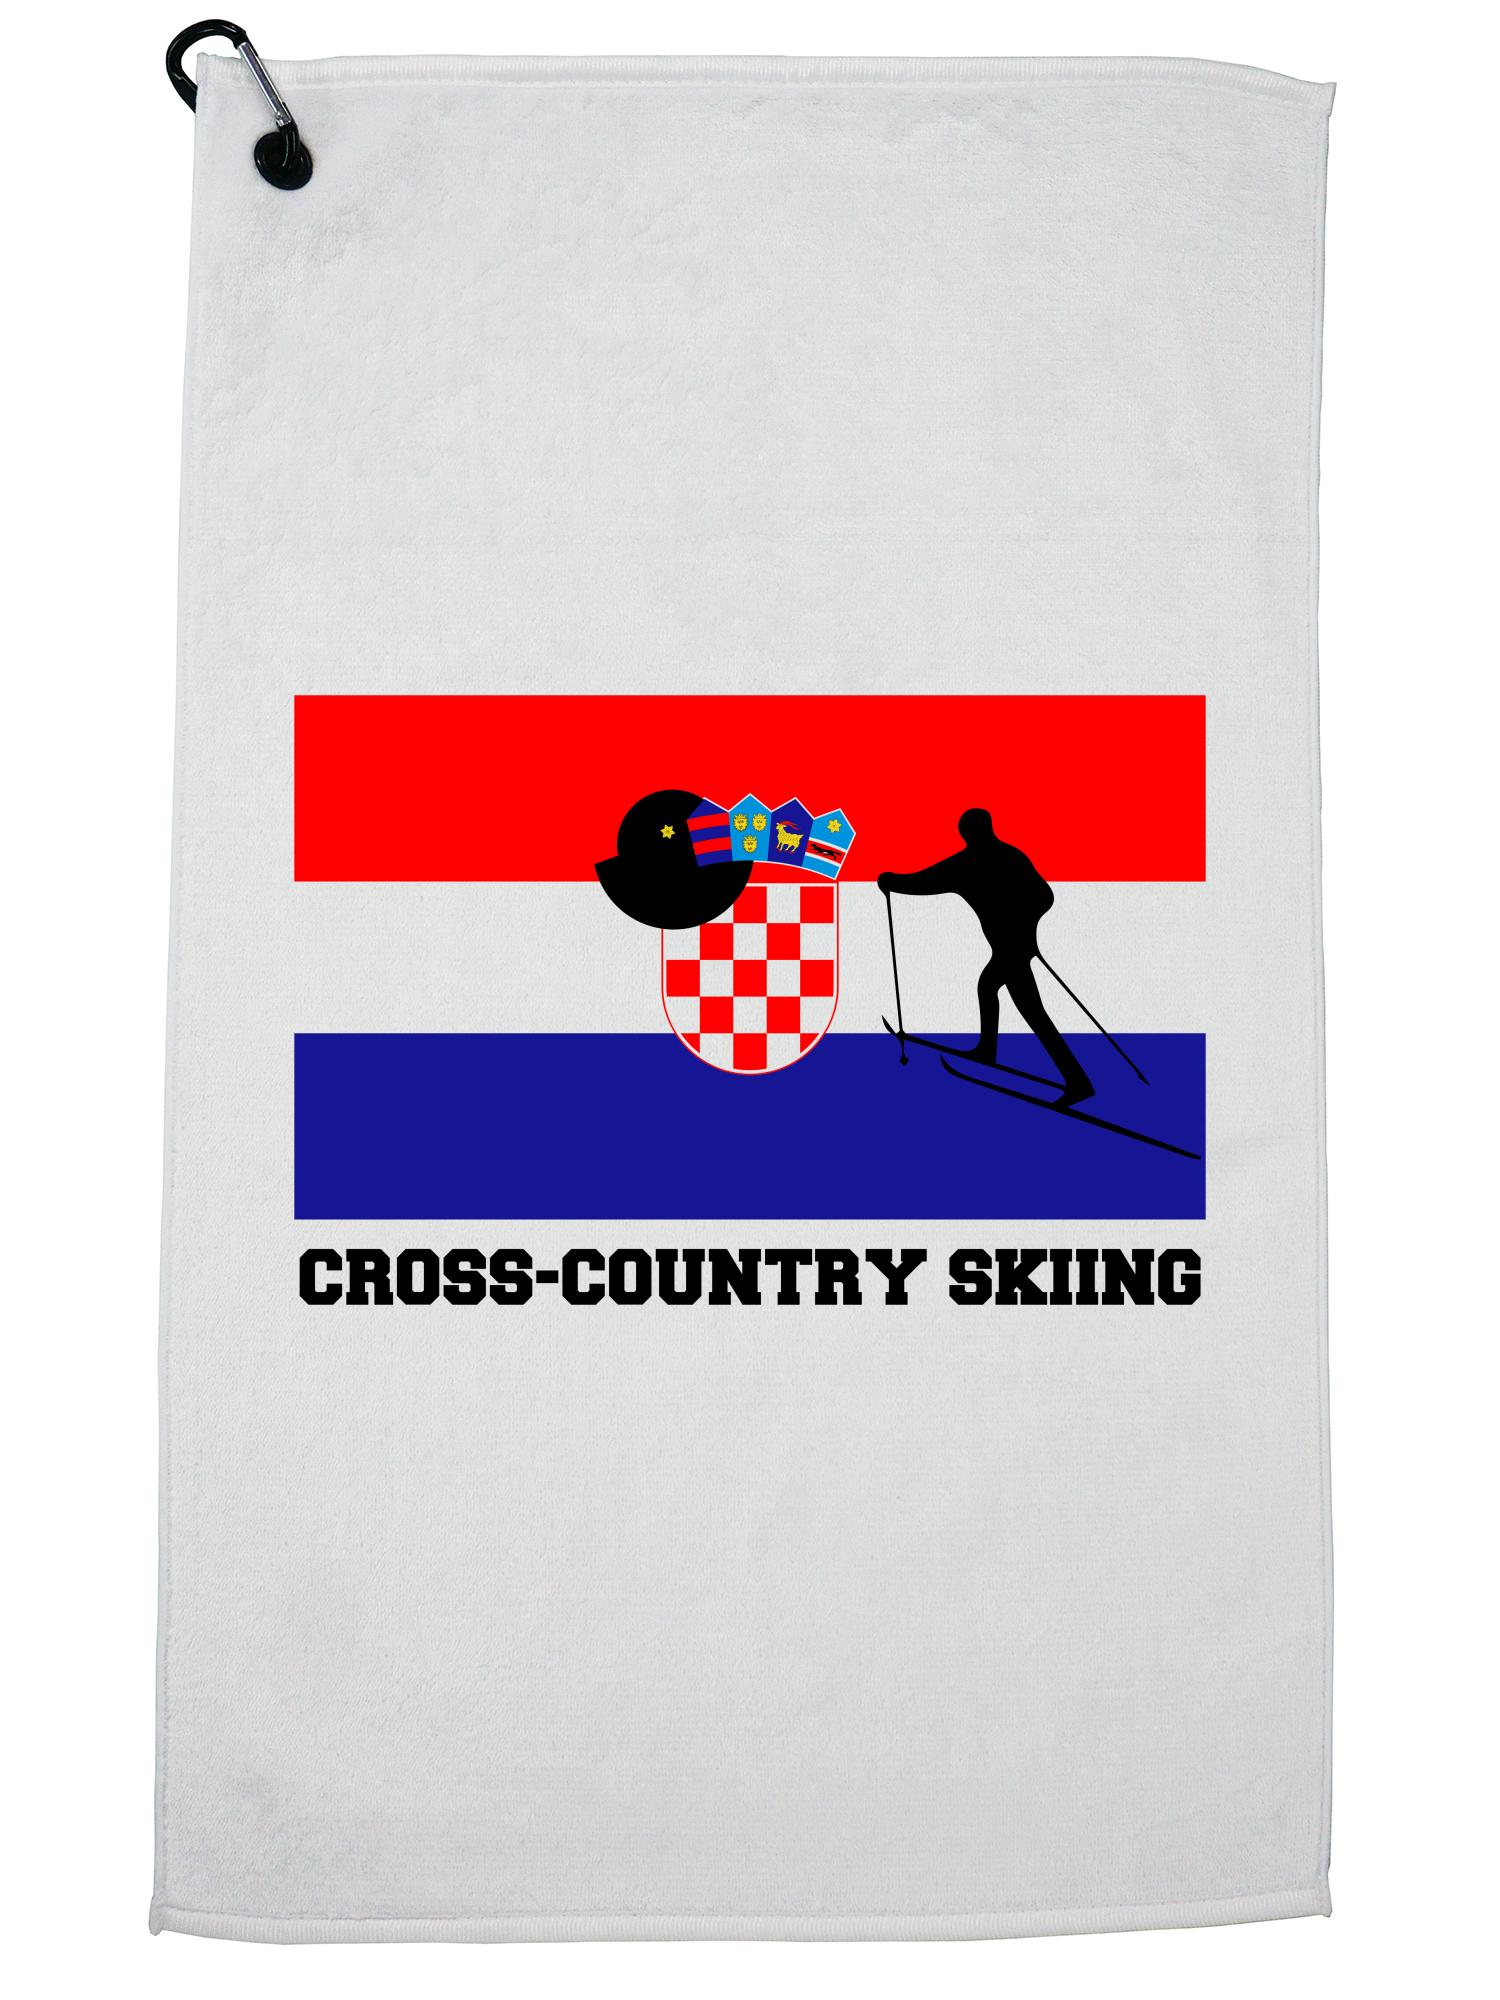 Croatia Olympic Cross-Country Skiing Flag Silhouette Golf Towel with Carabiner Clip by Hollywood Thread